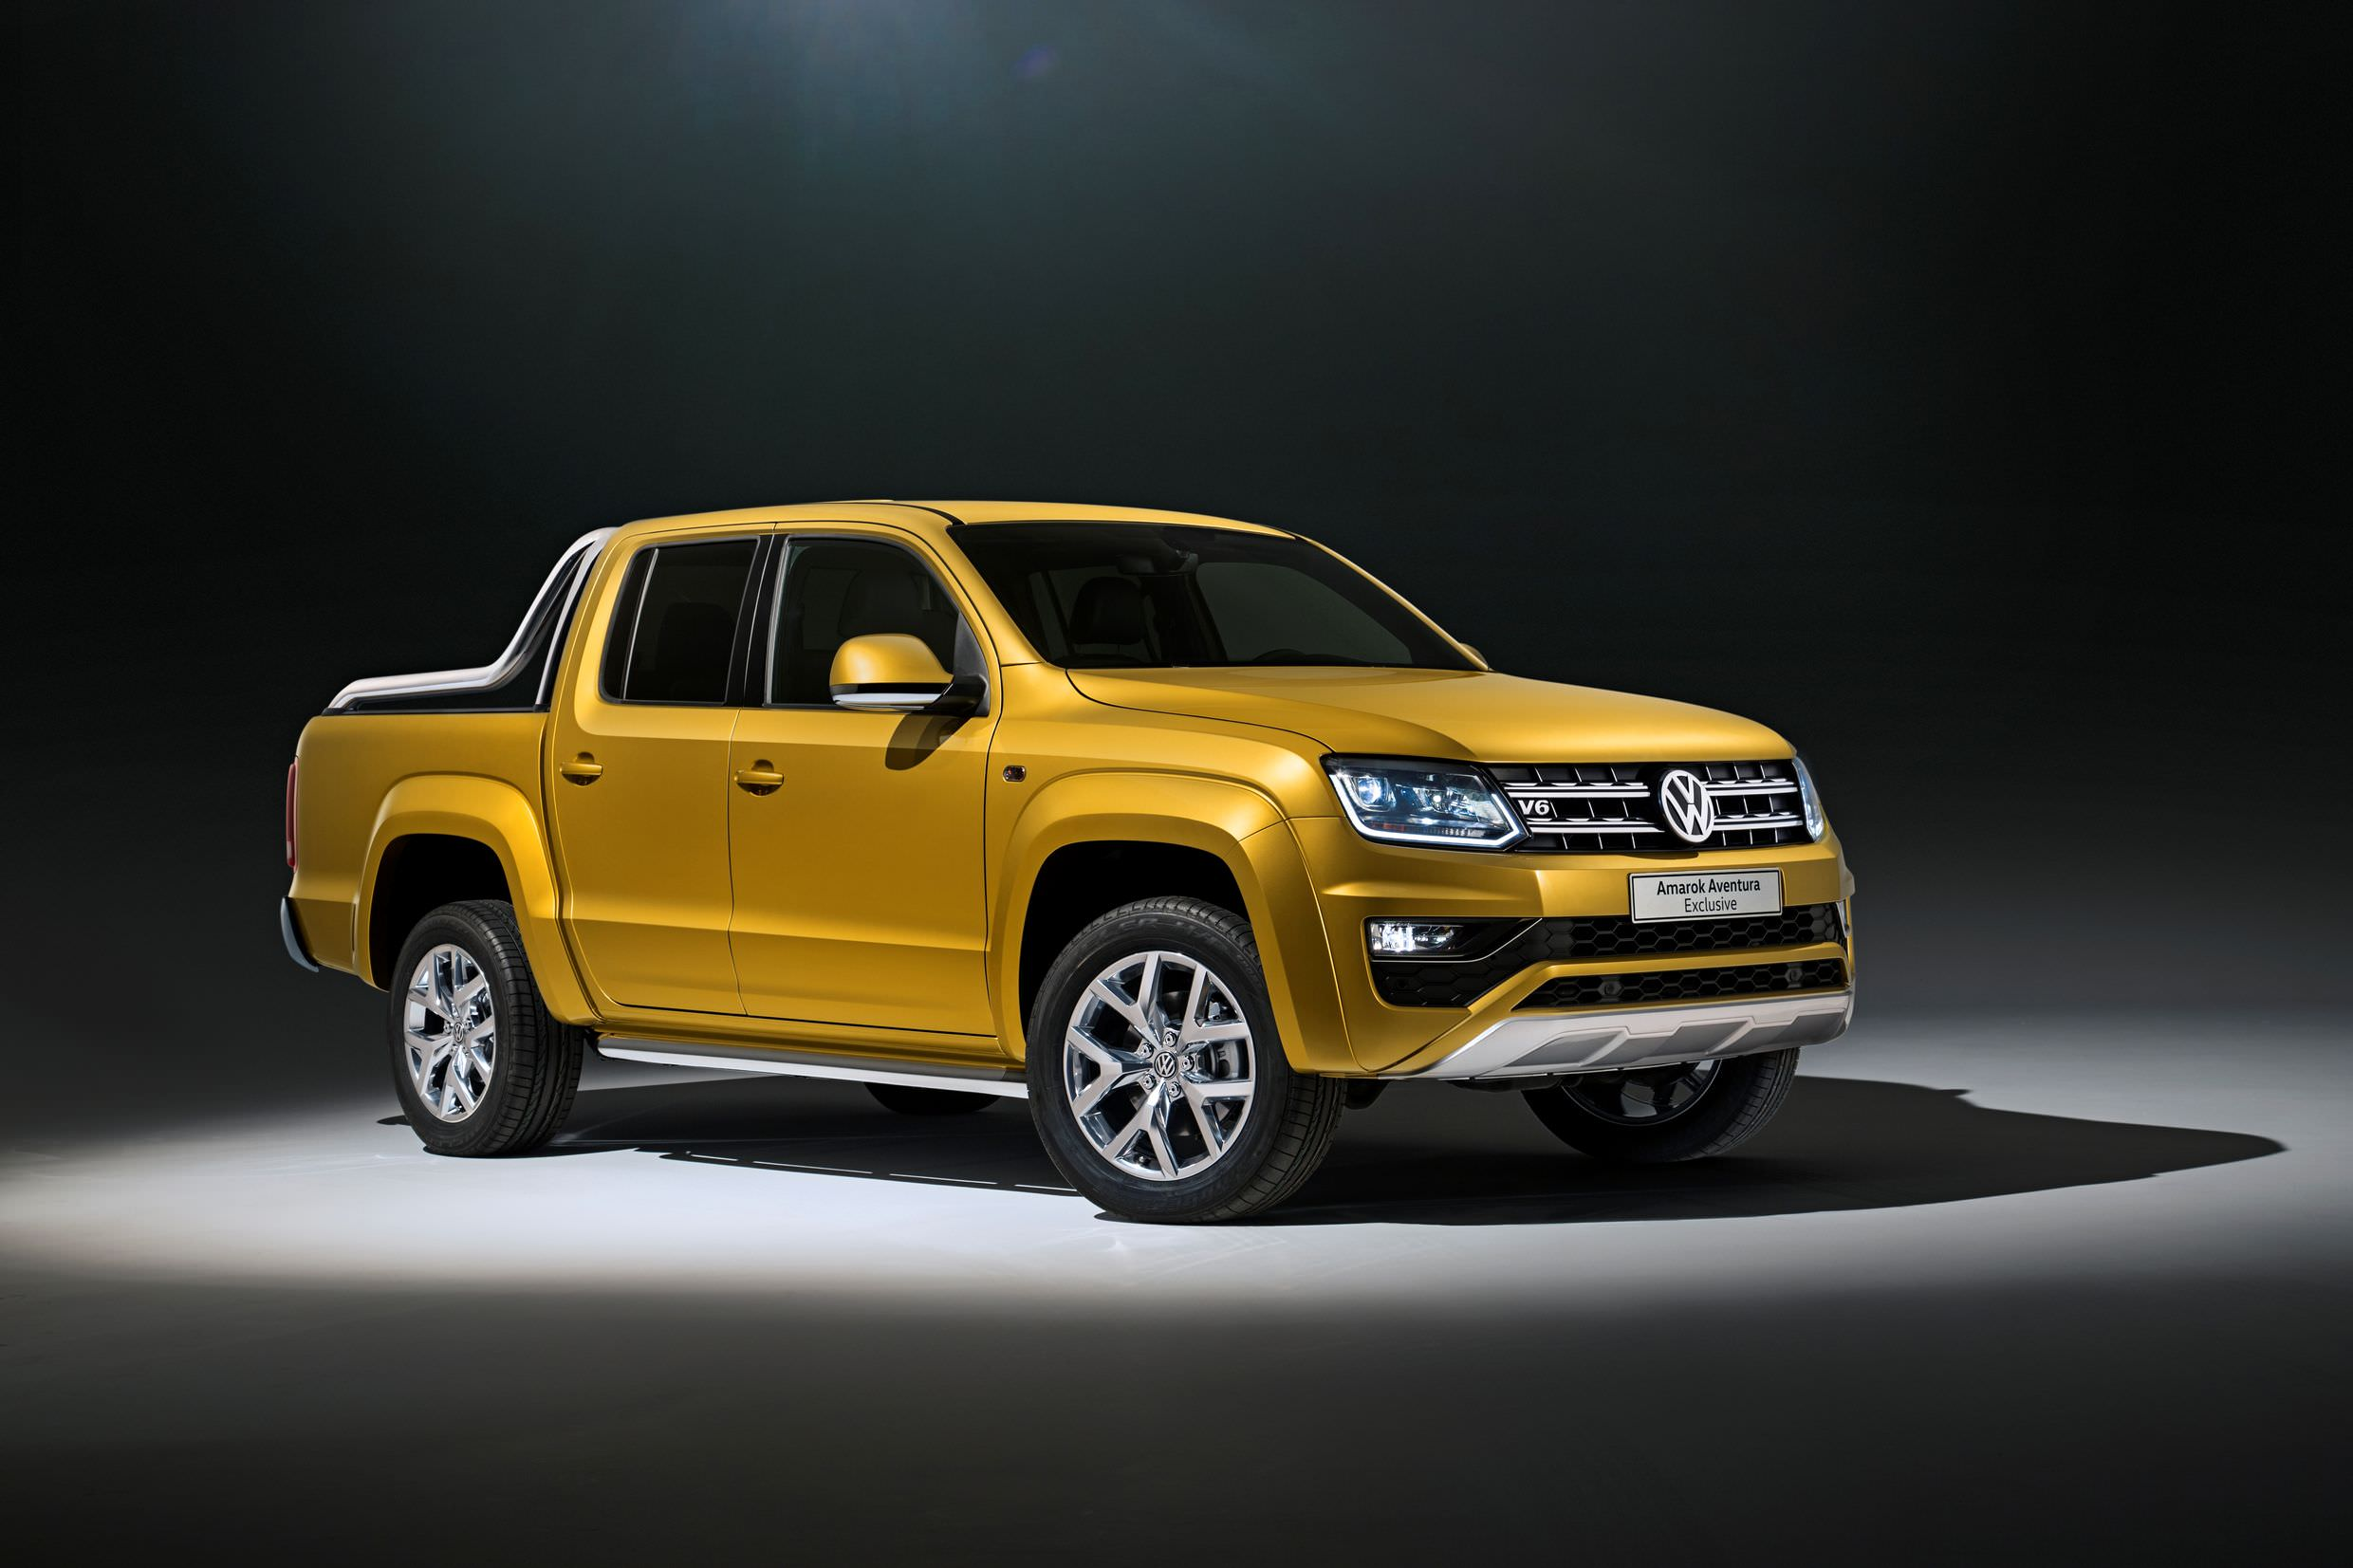 image of a yellow volkswagen amarok car exterior